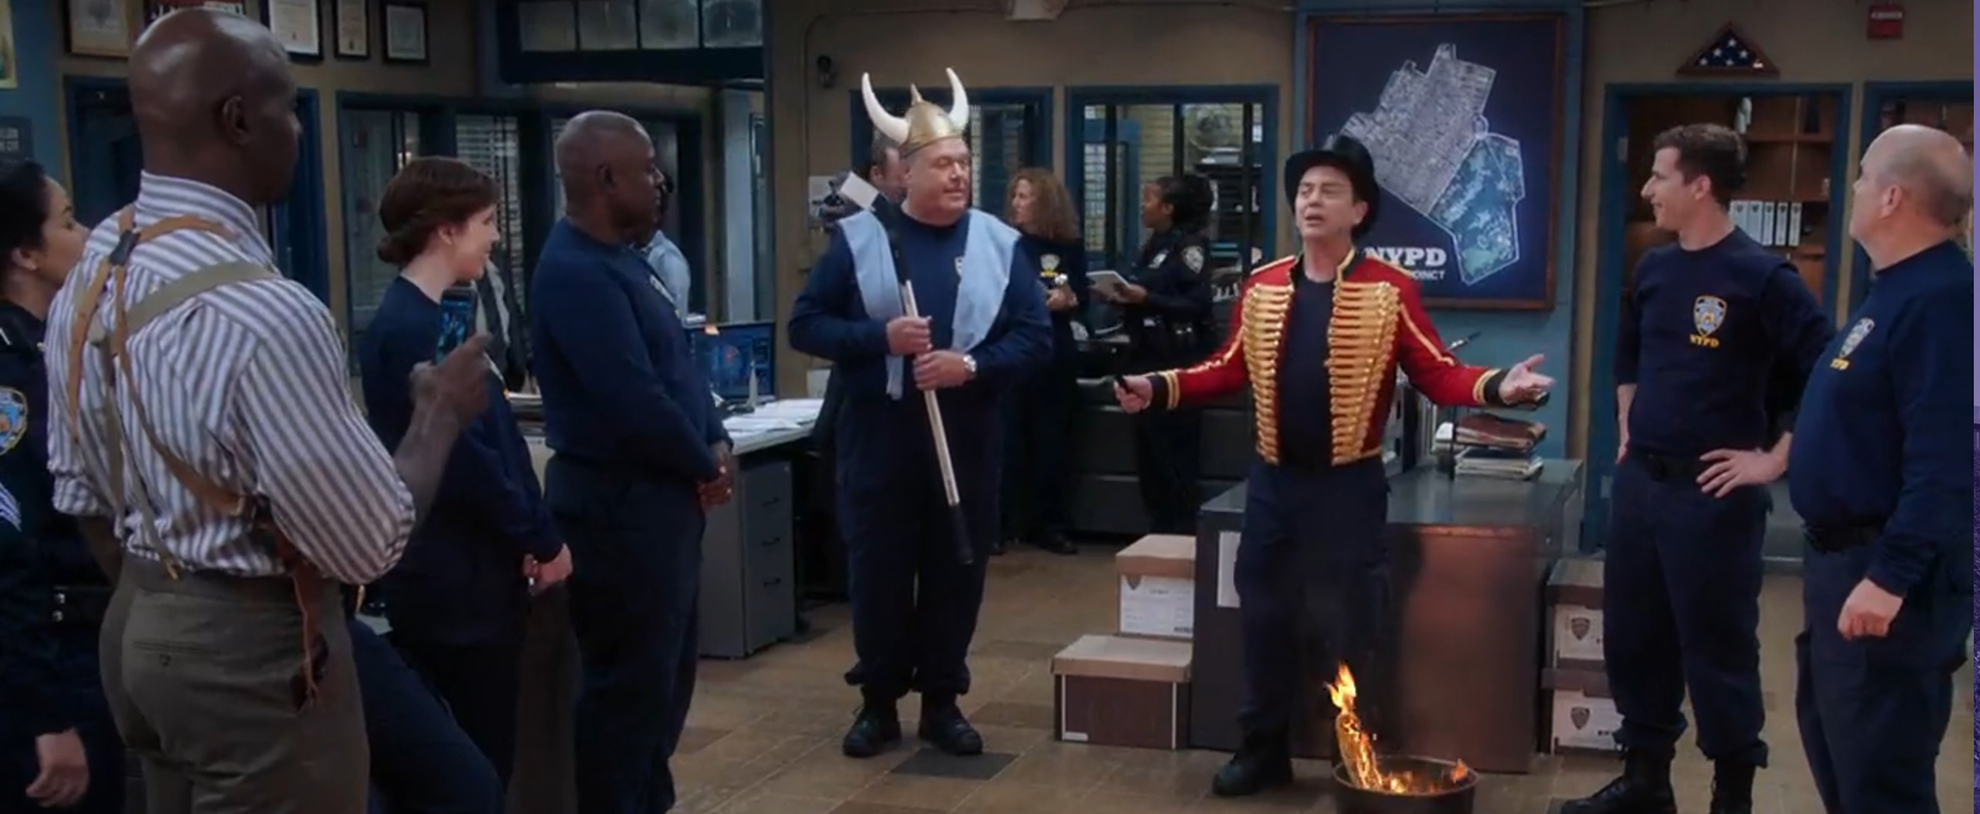 Brooklyn Nine-Nine: The Jimmy Jab Games II. Image Credit: NBC.